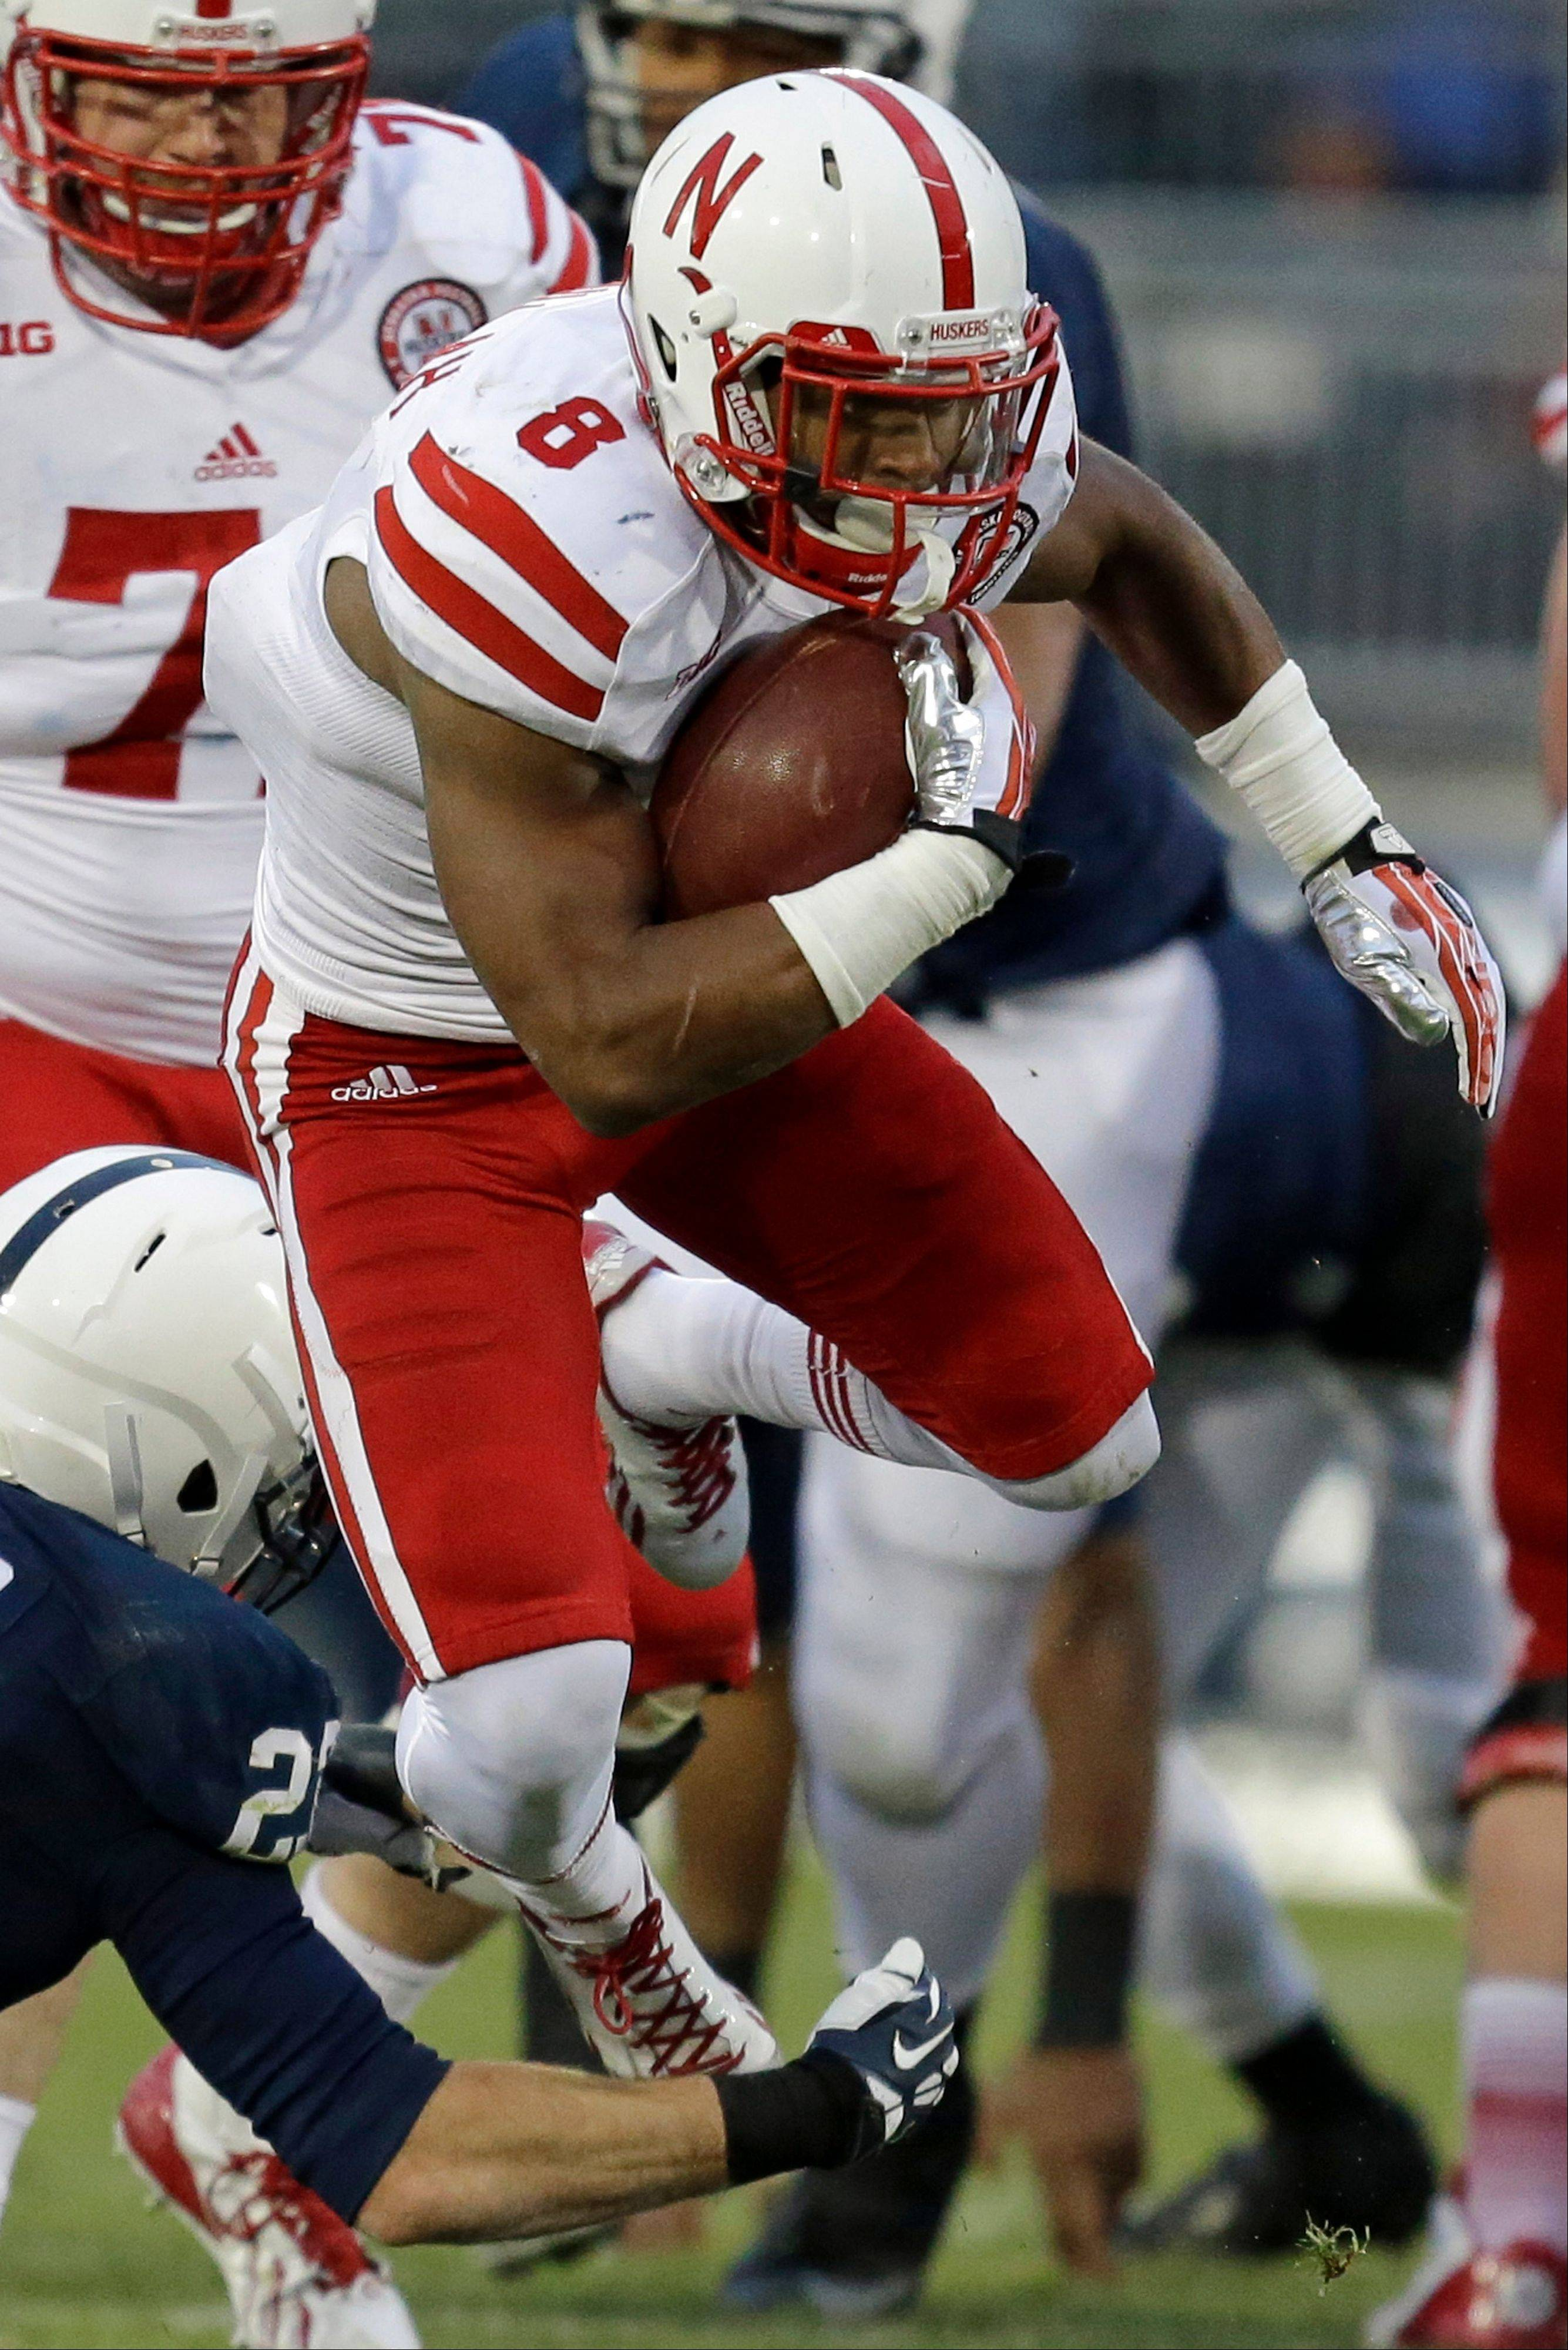 Nebraska running back Ameer Abdullah is tripped up by Penn State safety Ryan Keiser during the second quarter of Saturday�s game in State College, Pa.